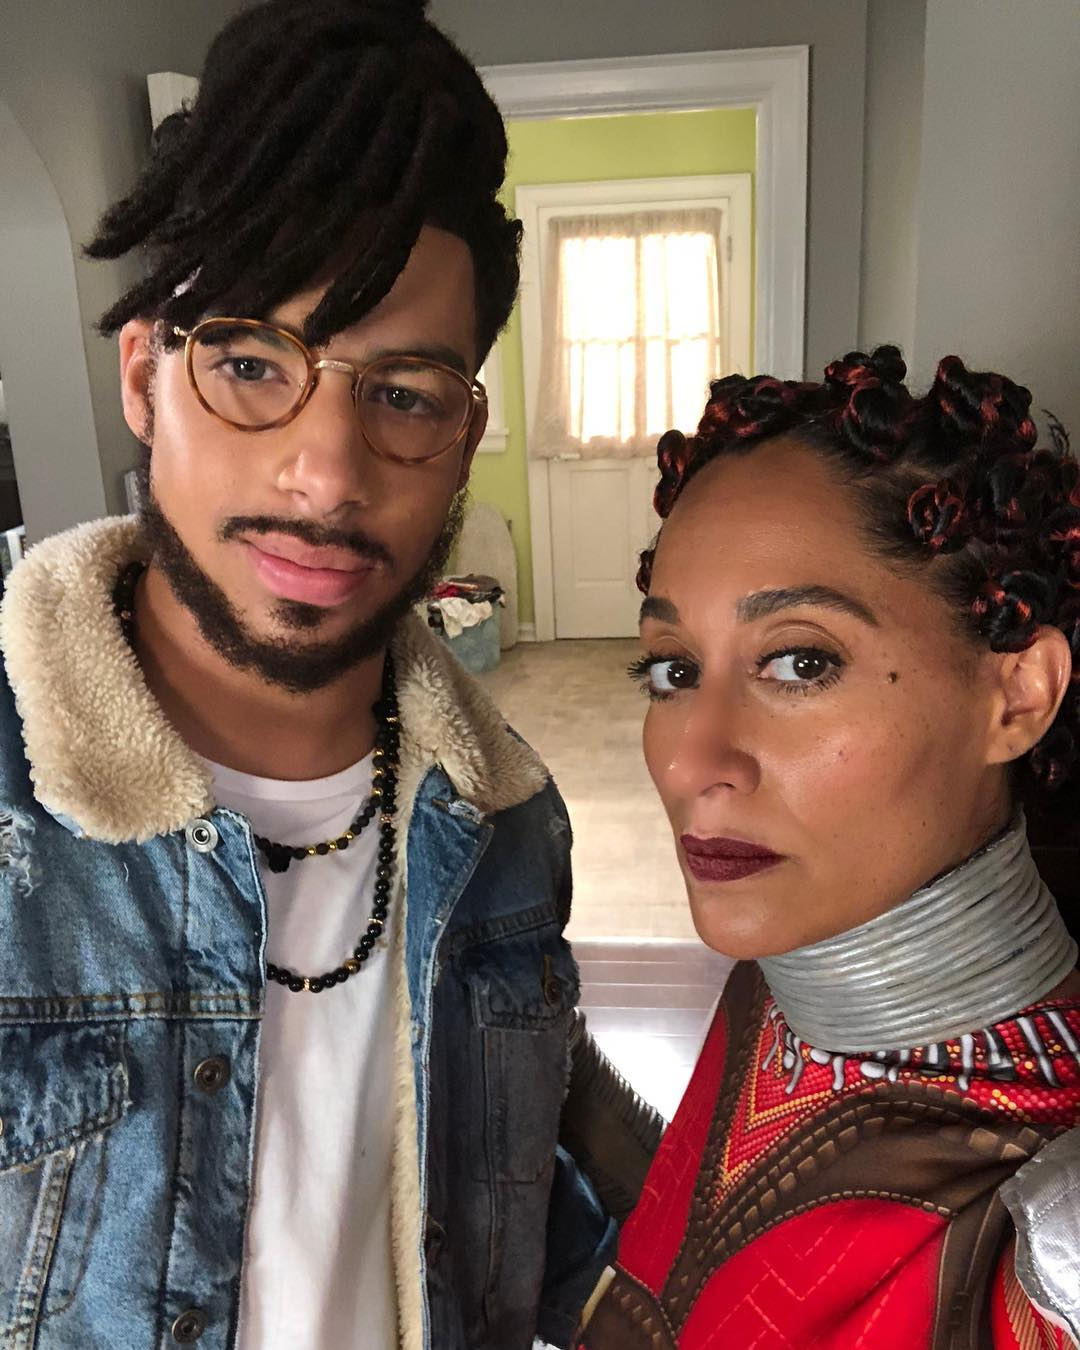 Marcus Scribner + Tracee Ellis Ross as Killmonger + Nakia // via instagram.com/traceeellissross